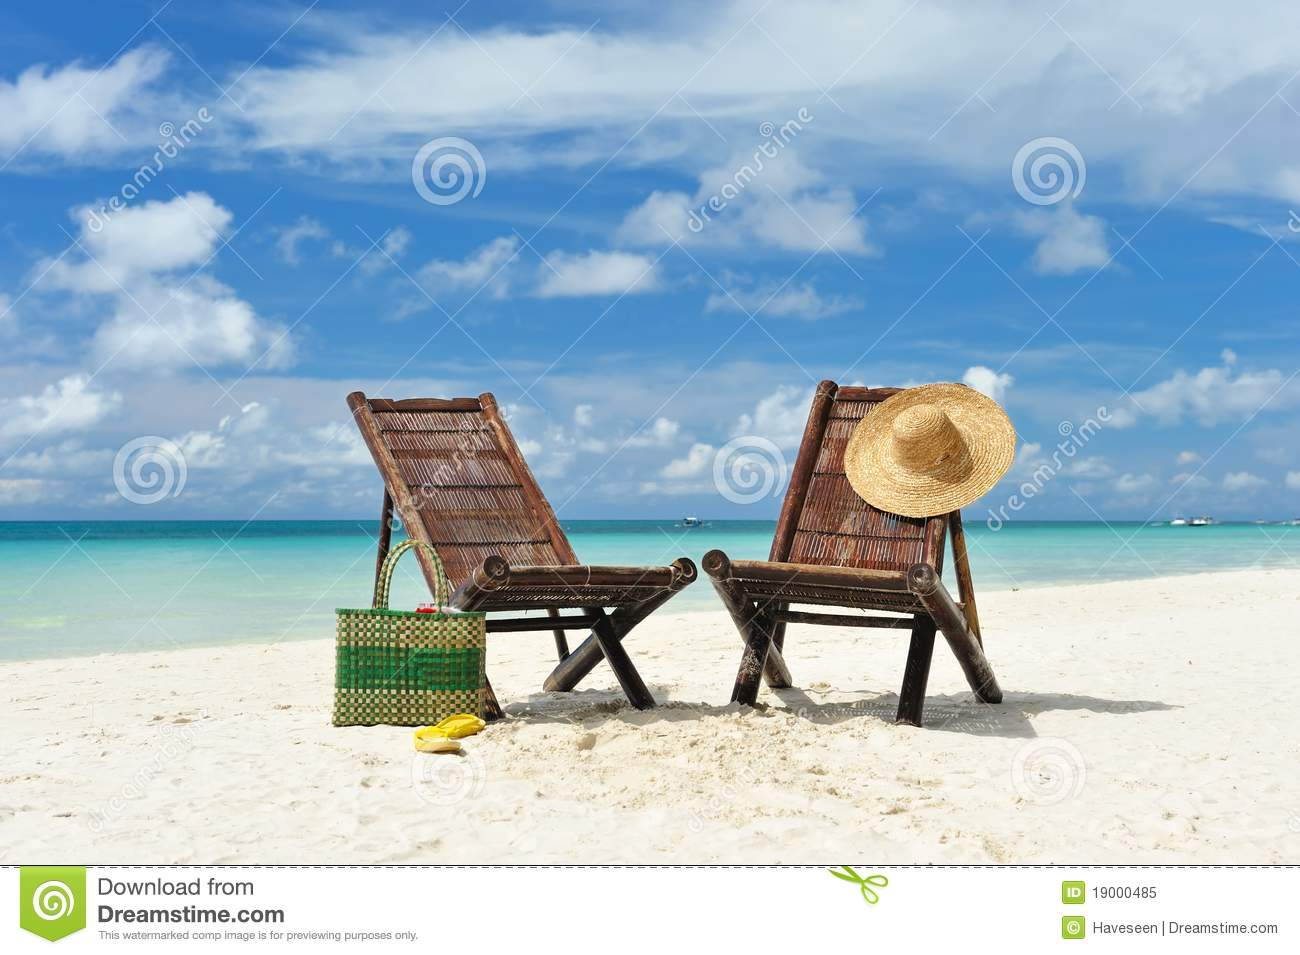 Chaise lounge at beach royalty free stock photo image for Chaise lounge beach